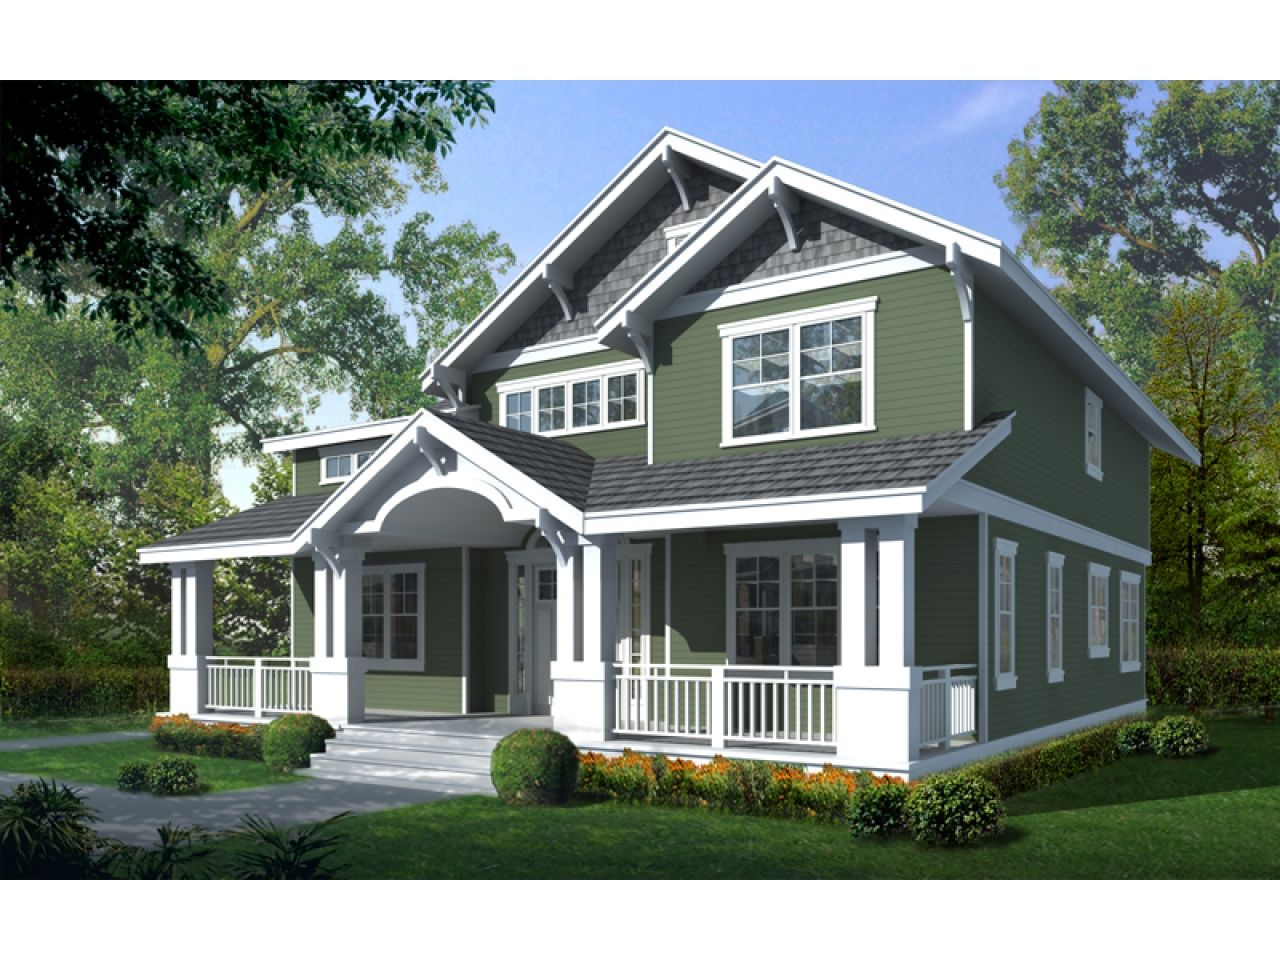 Craftsman House Plans One Story Tags Craftsman Style Craftsman Bungalow Craftsman Craftsman Style House Plans Craftsman House Plans Bungalow House Plans